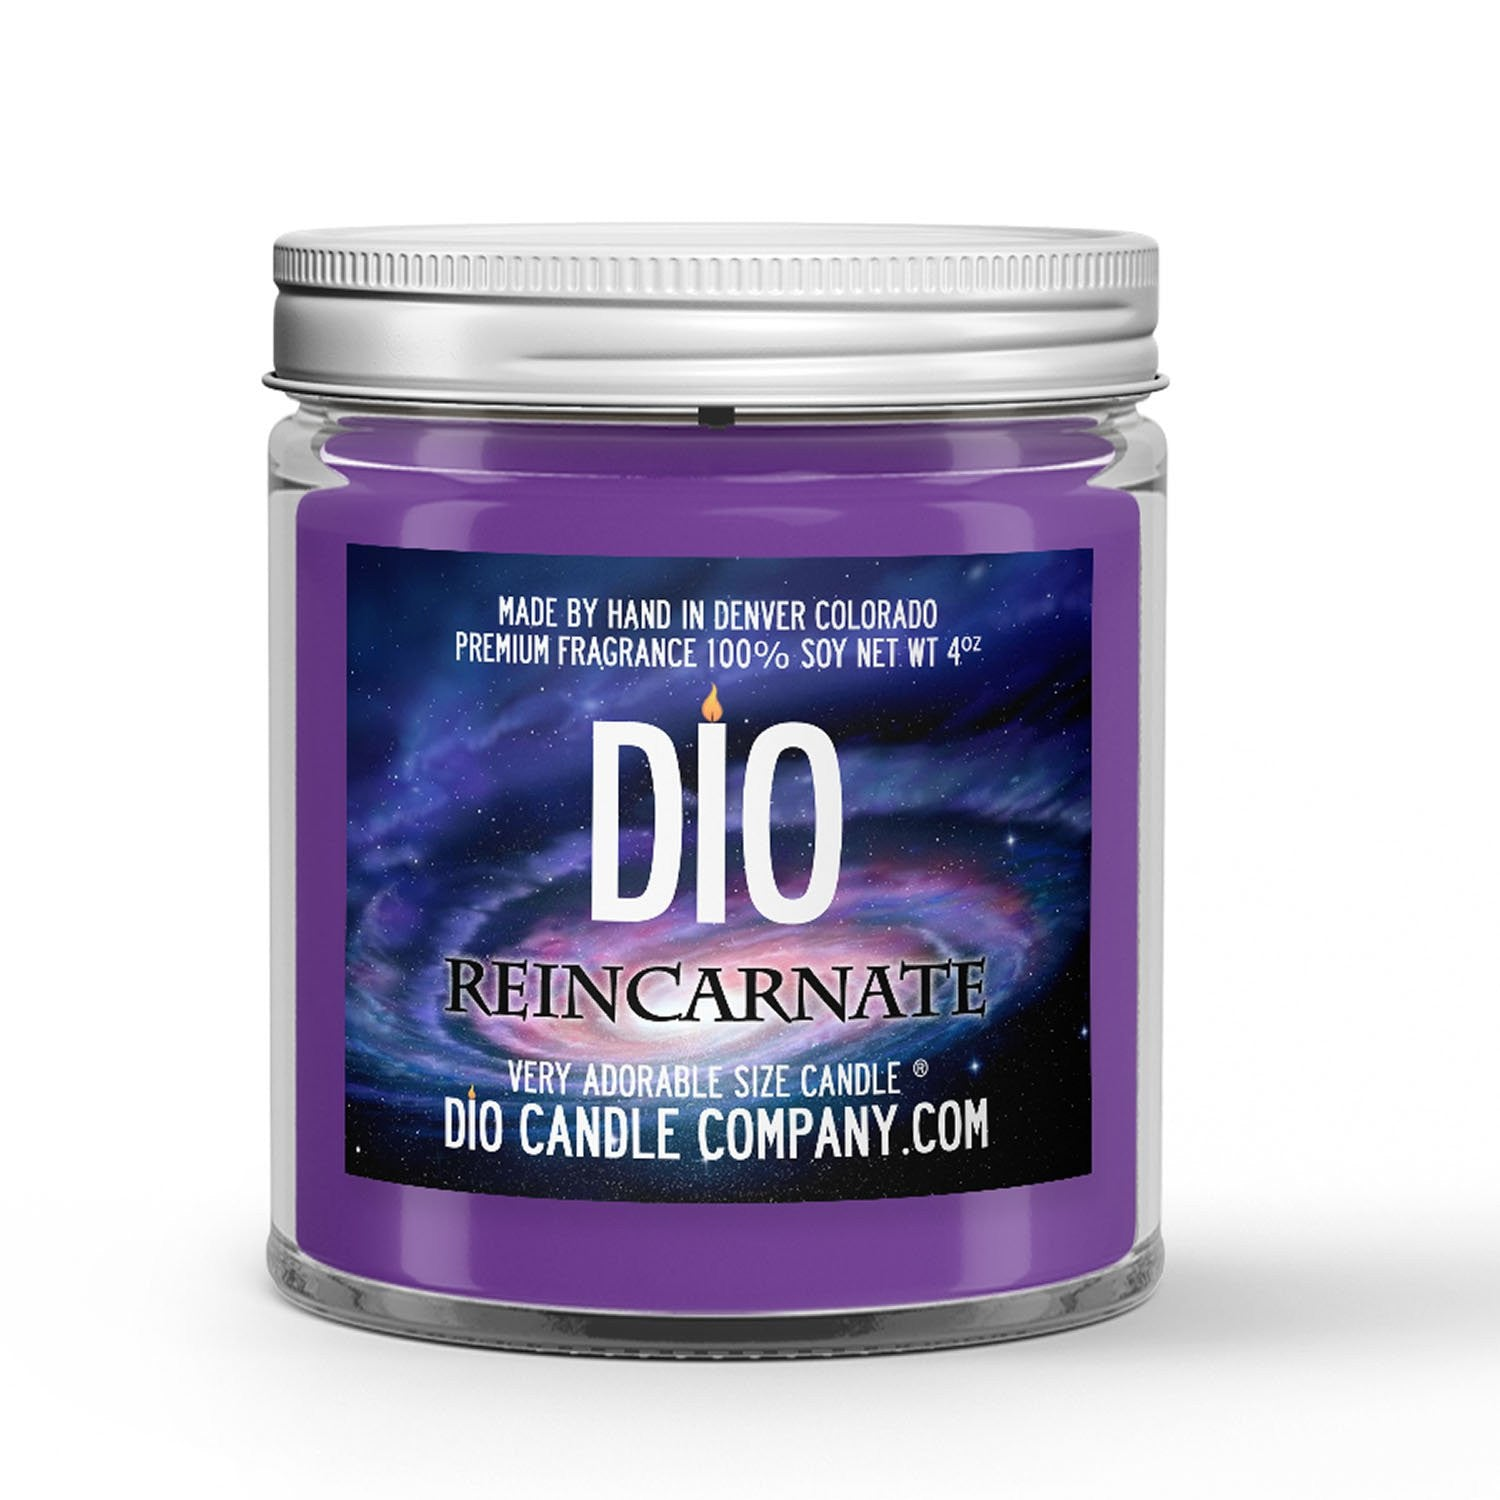 Reincarnate Candle Coco Chanel Type Scented - Dio Candle Company